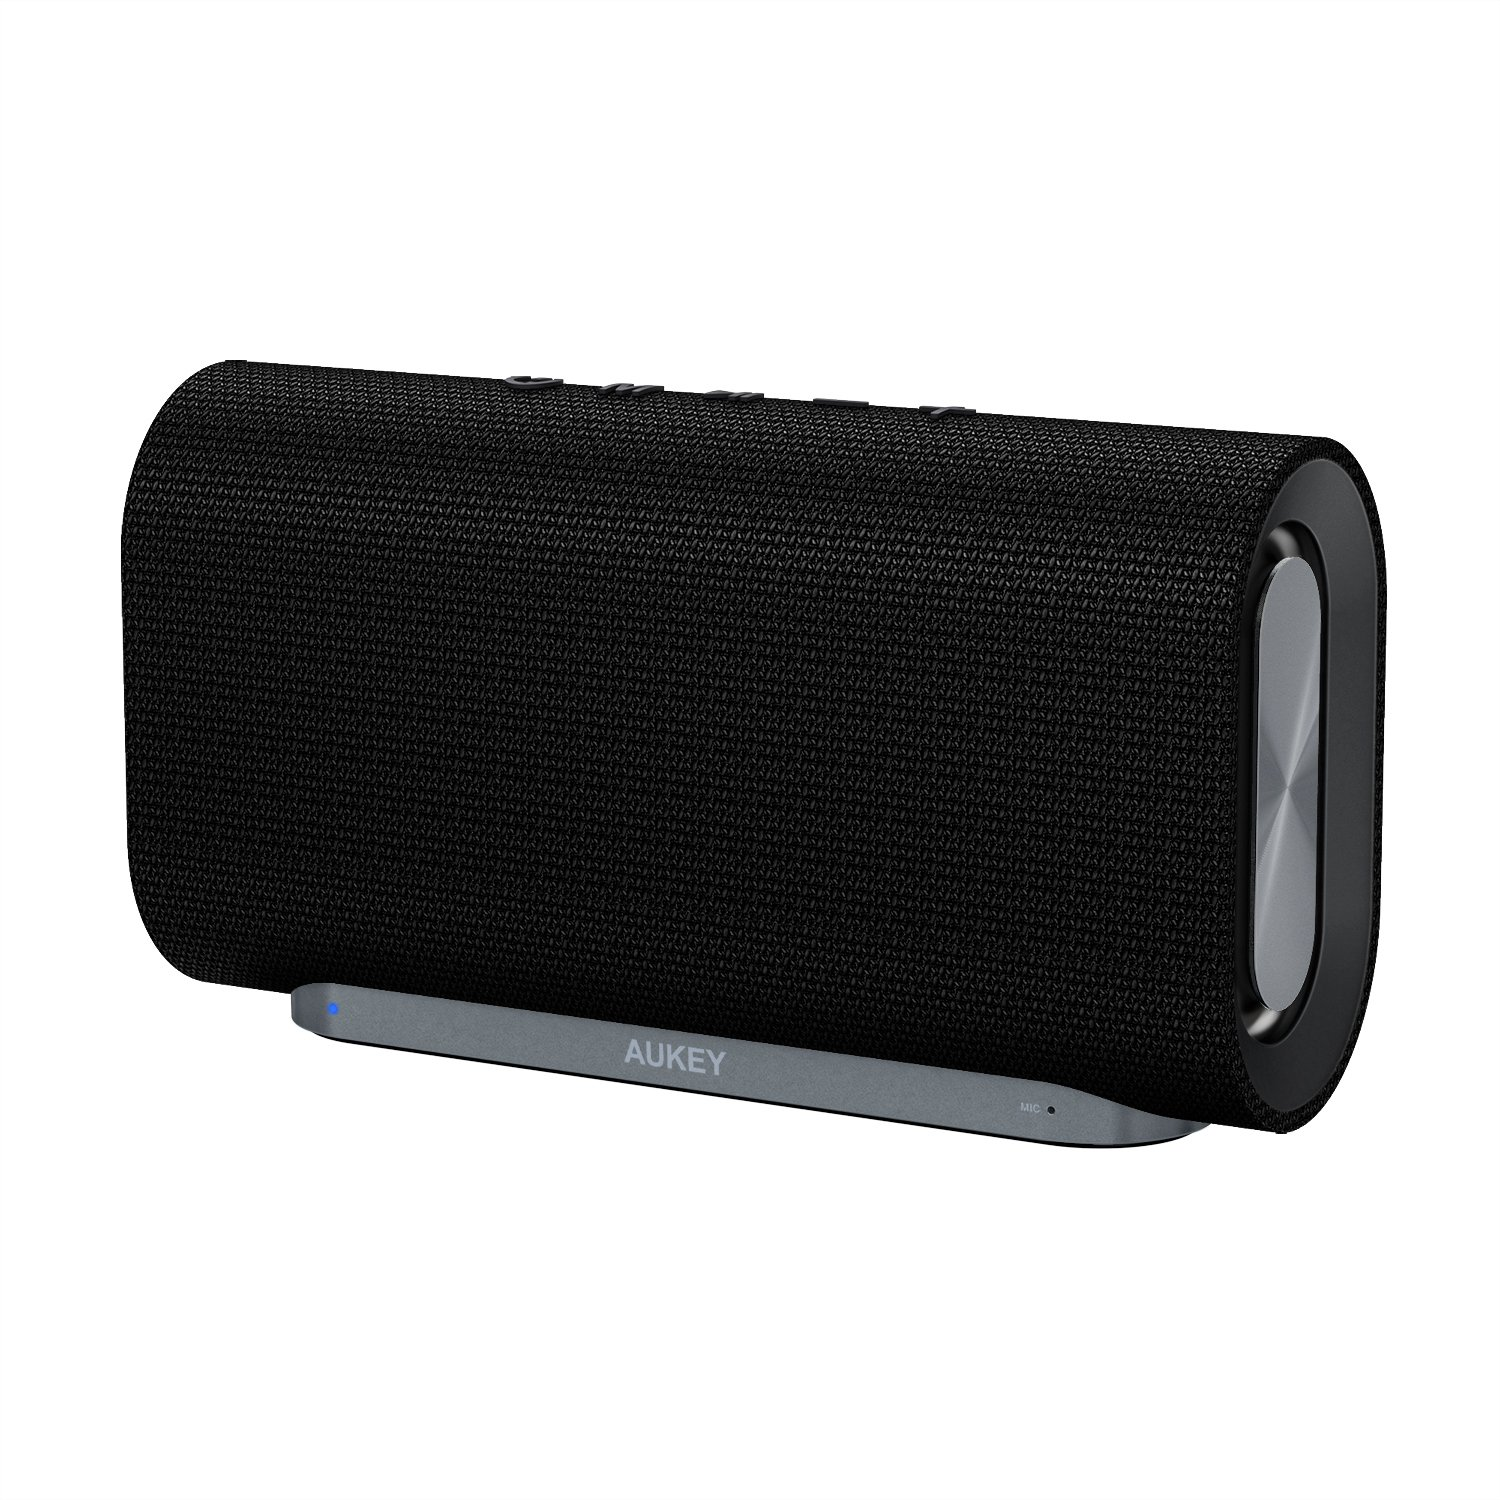 AUKEY Eclipse Bluetooth Speaker 20 W with 12 Hours Playtime, Enhanced Bass  with Dual Passive Radiators / Subwoofers and Woven Fabric Surface for Echo